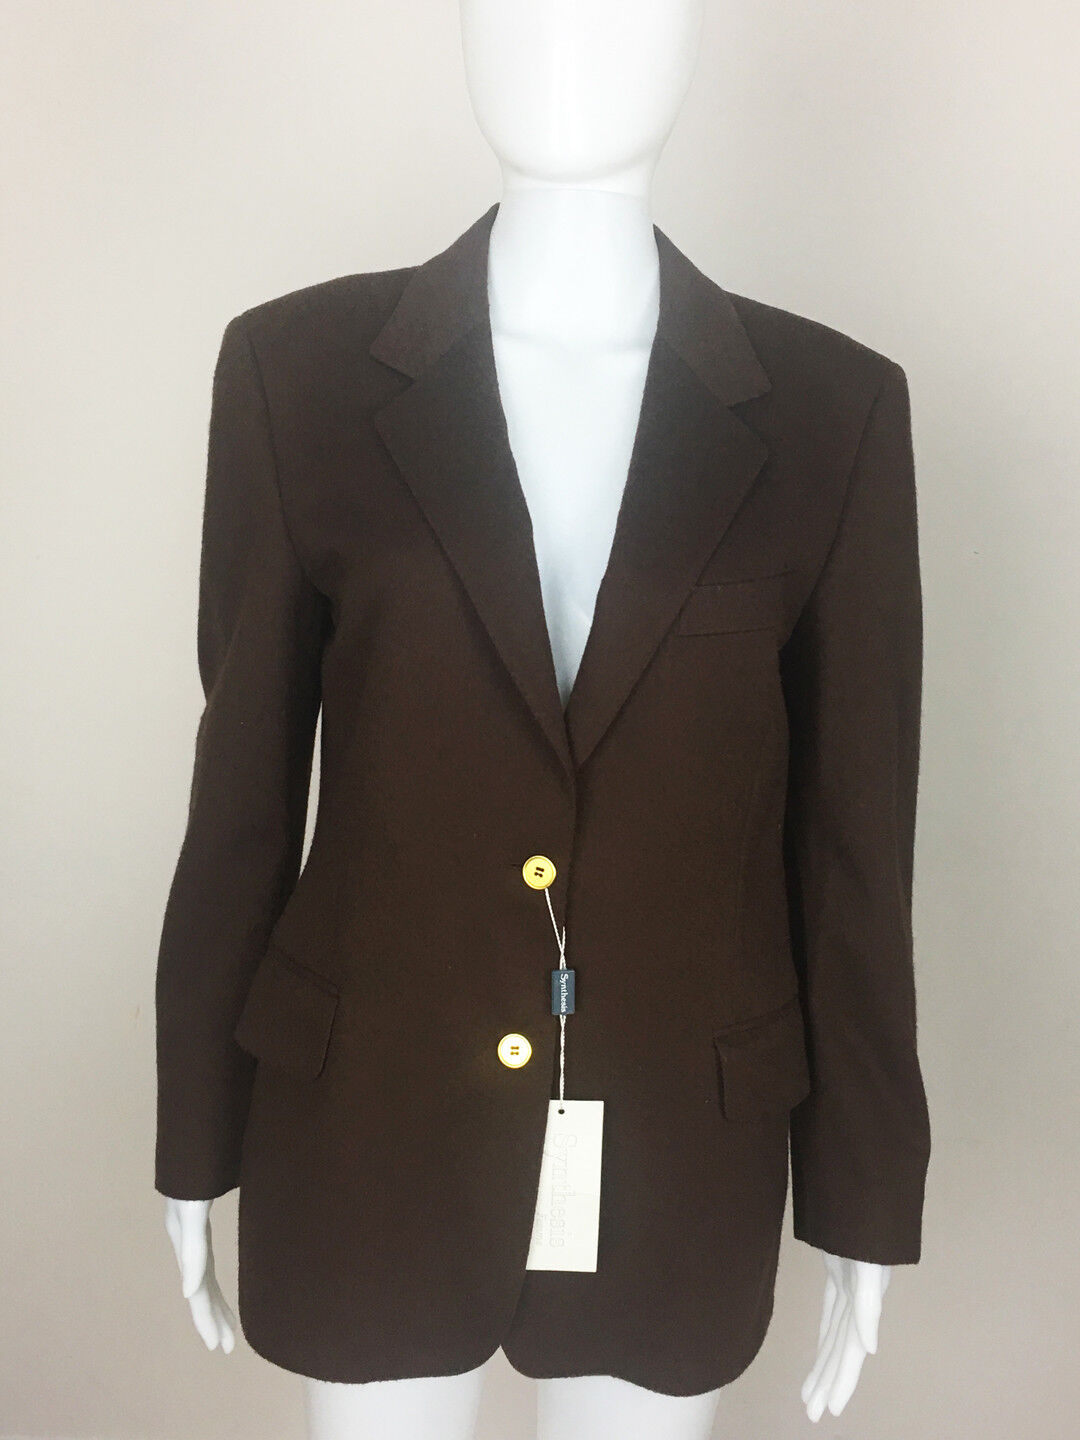 SYNTHESIS Women's Designer Wool Cashmere Blazer. MADE IN ITALY. Size US 8 (NWT)